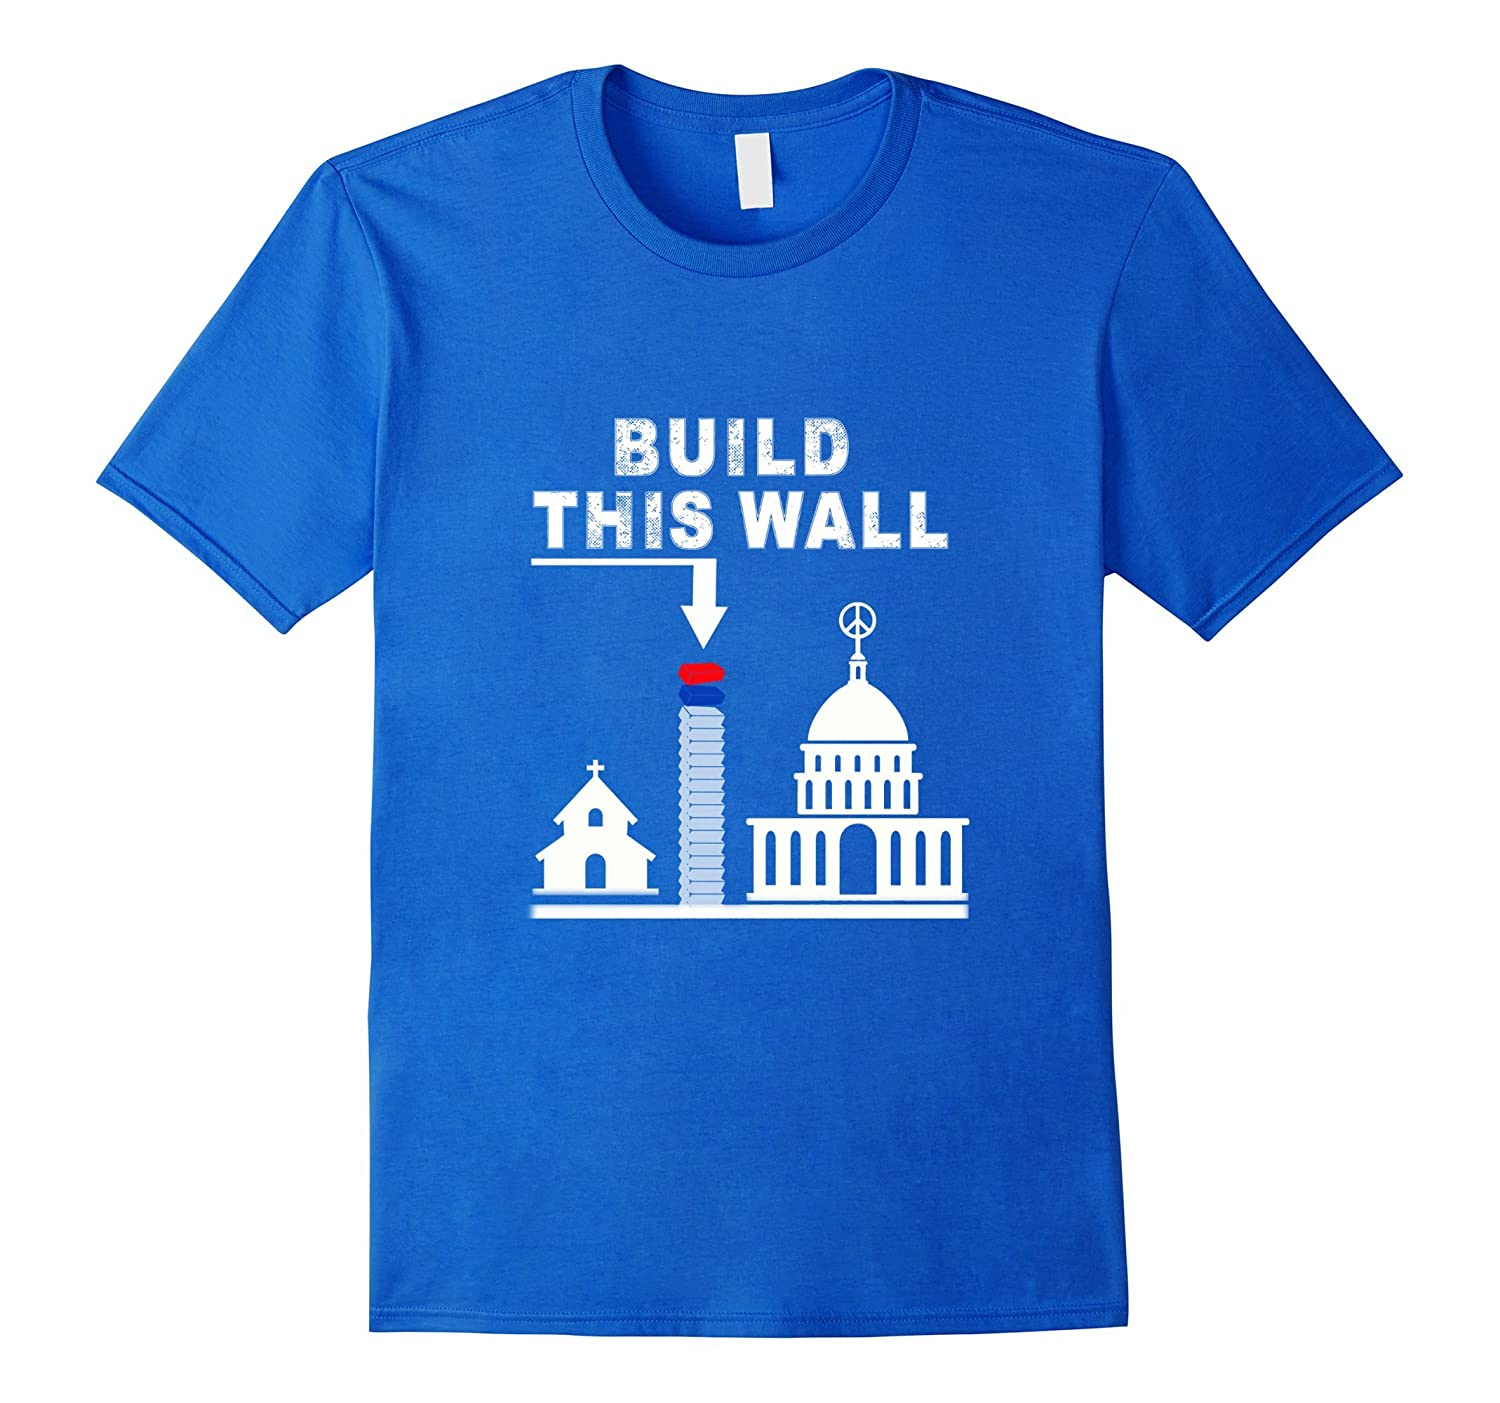 Build This Wall Tee Shirt